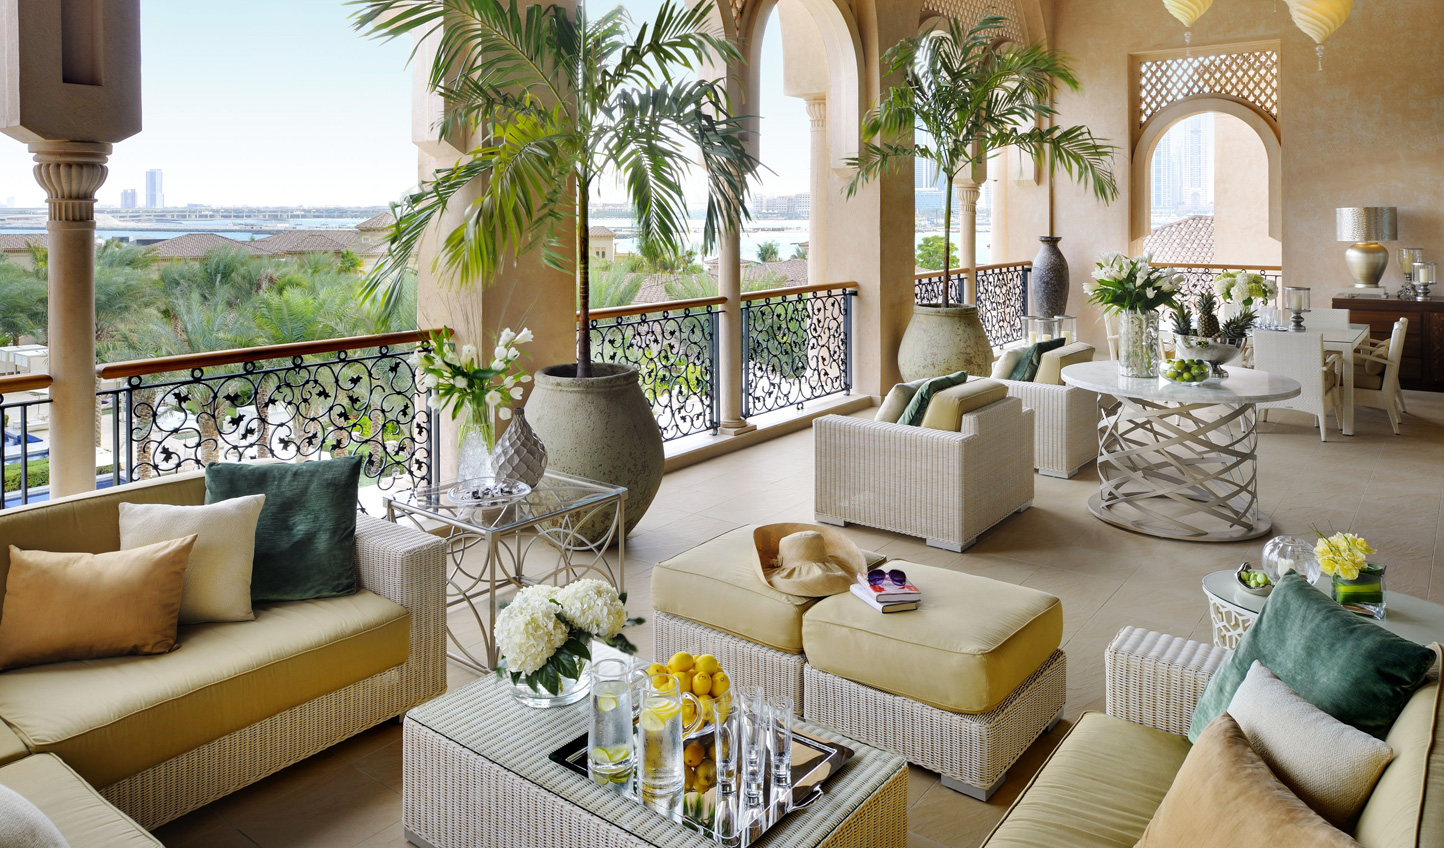 The seaview terrace makes for the perfect spot to while away an afternoon